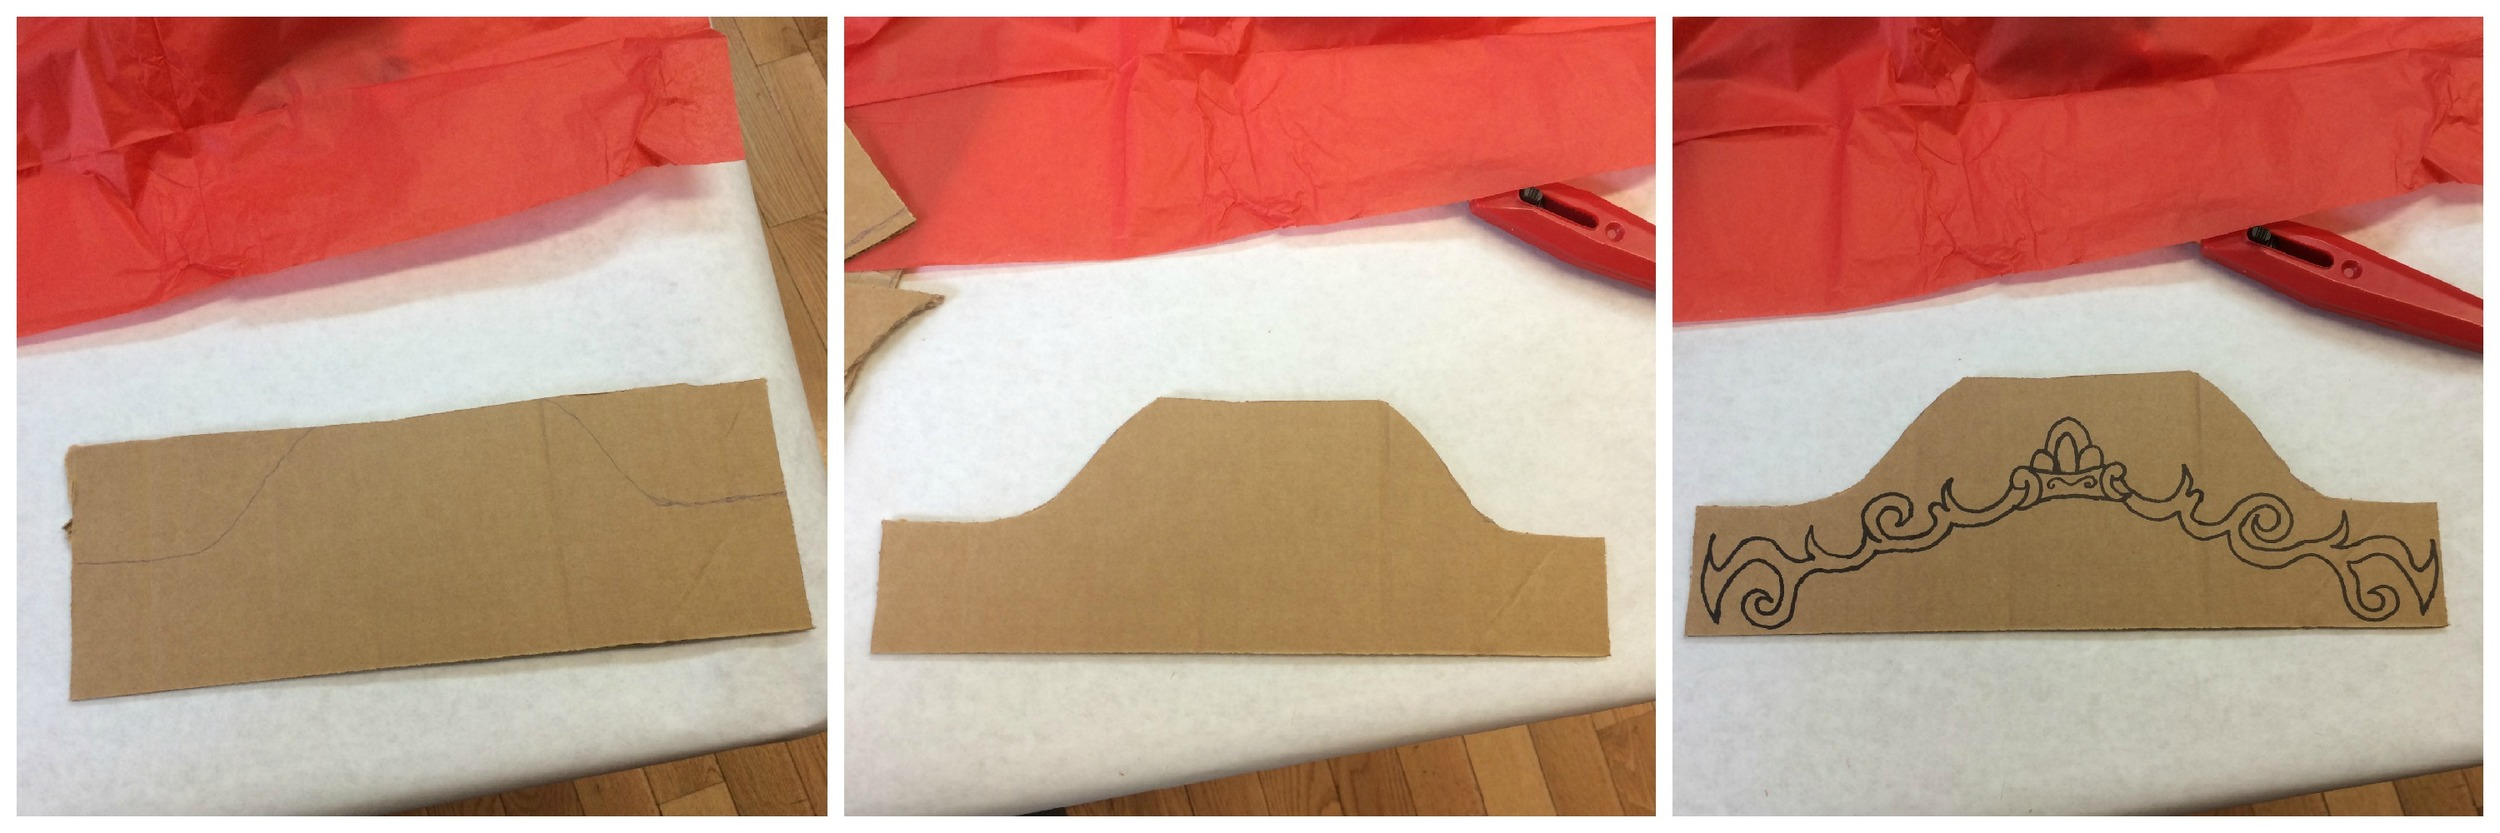 4. Cut out and design a headboard using the leftover cardboard from the front of the stage to make your theatre look authentic!